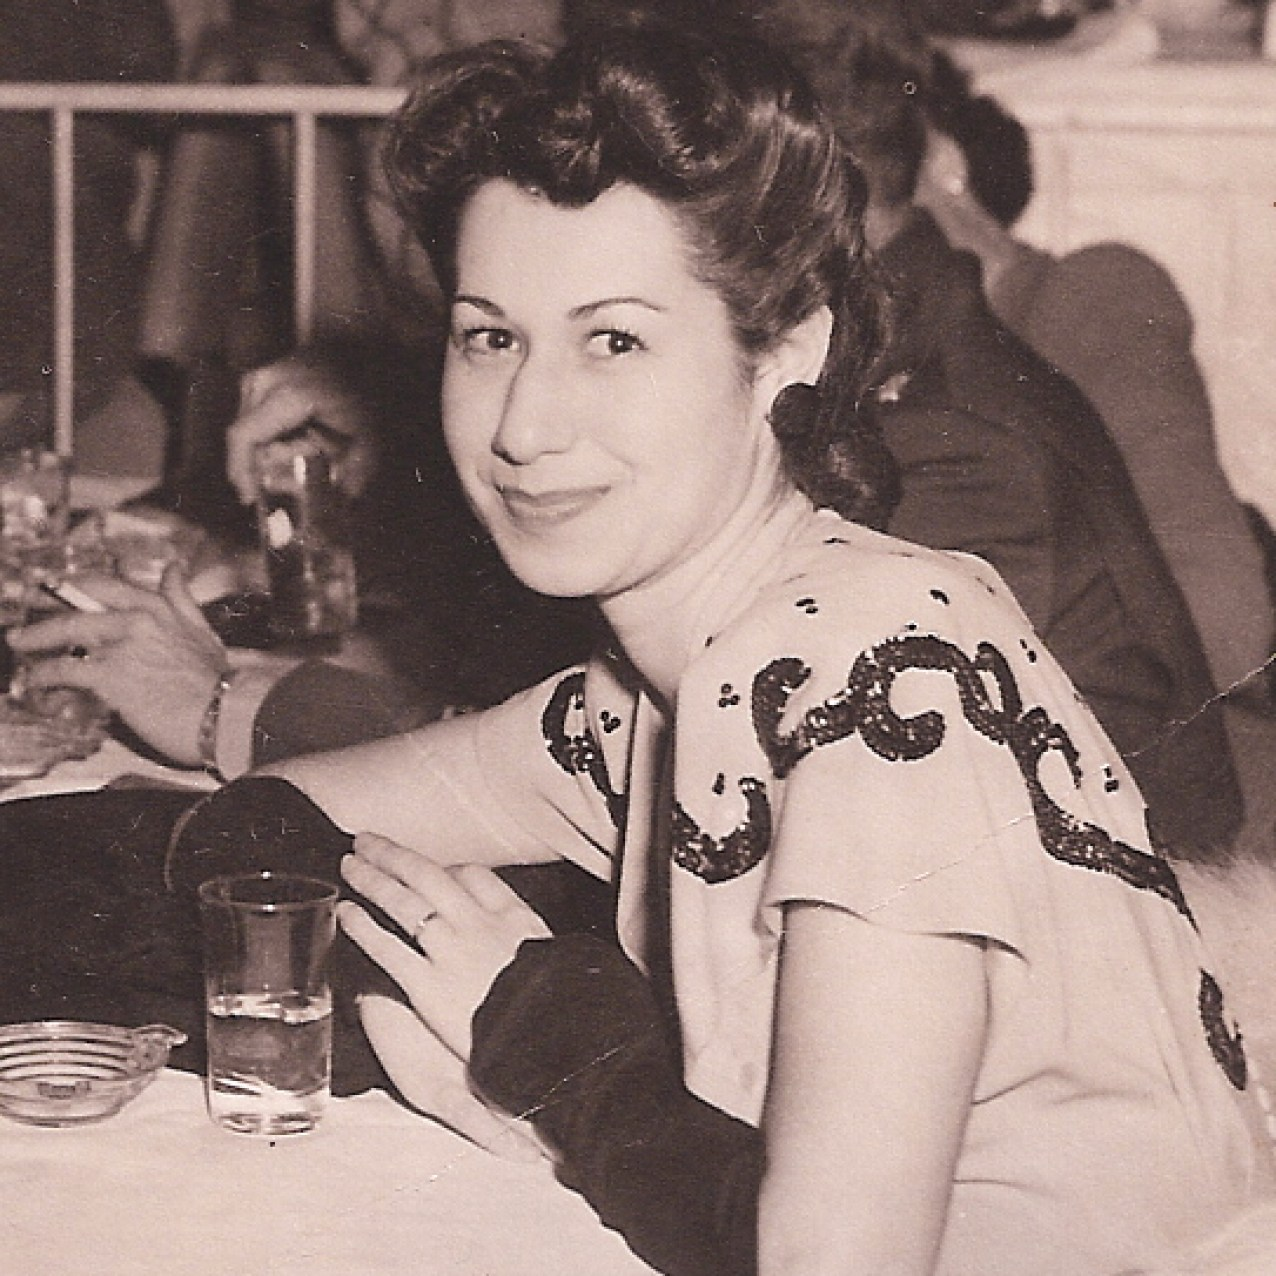 Mom at the Coconut Grove in Los Angeles, in the early 1940s.